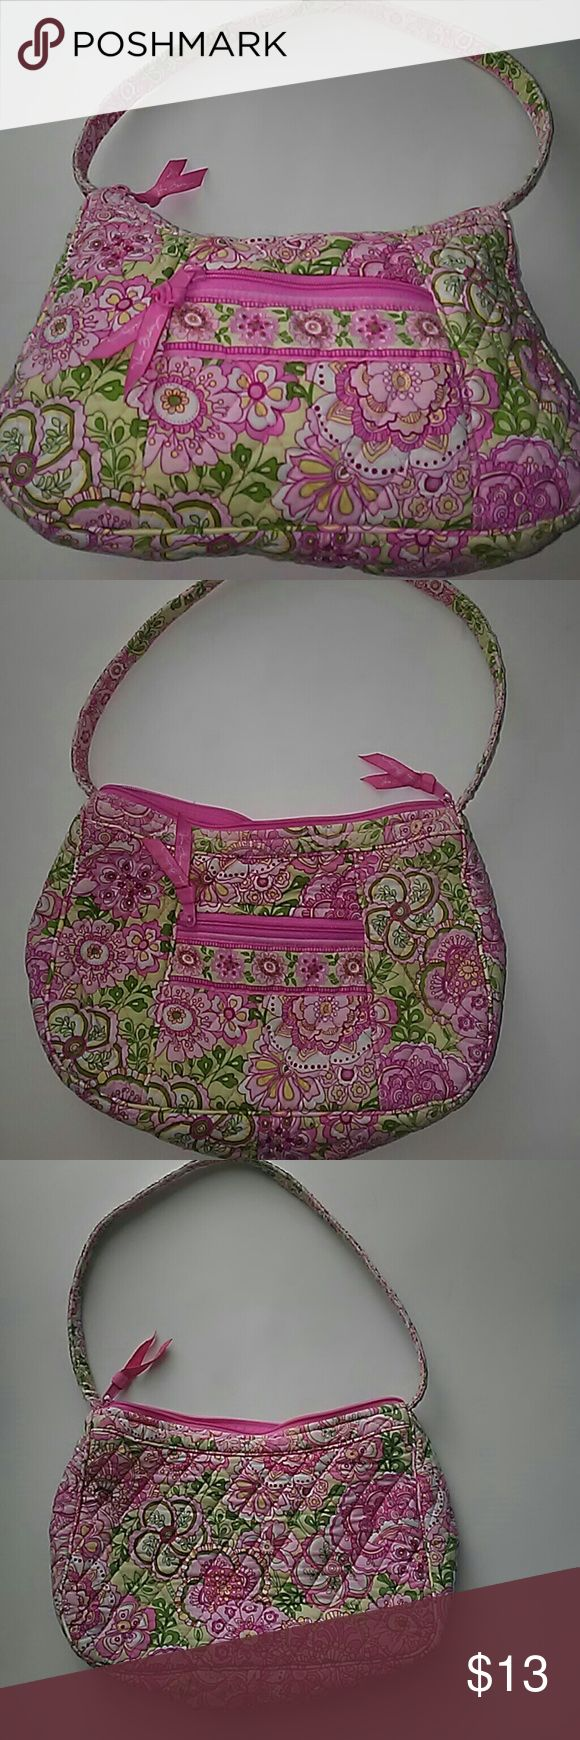 Used. Pink Vera Bradley Used Vera Bradley 8 inches long by 12 wide by. 4 deep pink pretty flowers and leaves clean no stains comes from pet free smoke free home Vera Bradley Bags Shoulder Bags